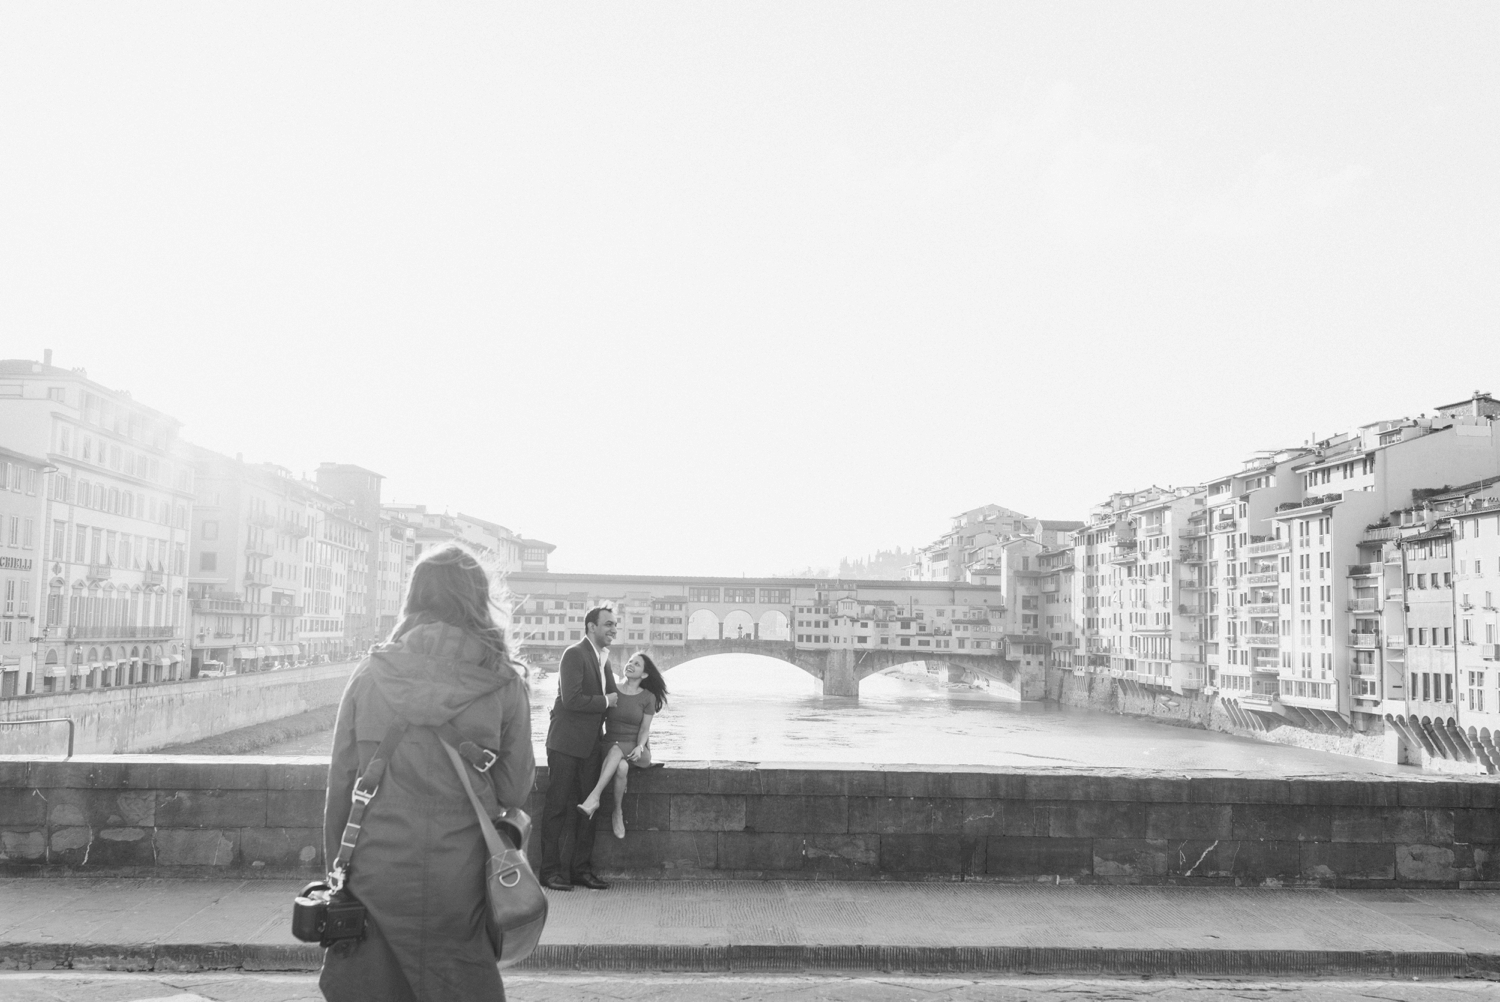 florence-tuscany-italy-wedding-photographer-destination-photographer-fine-art-film-wedding_4888.jpg